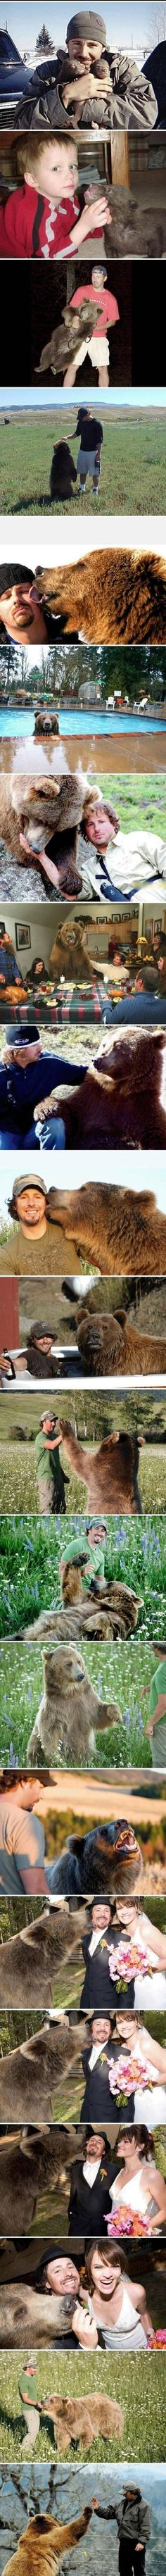 Bear for pet